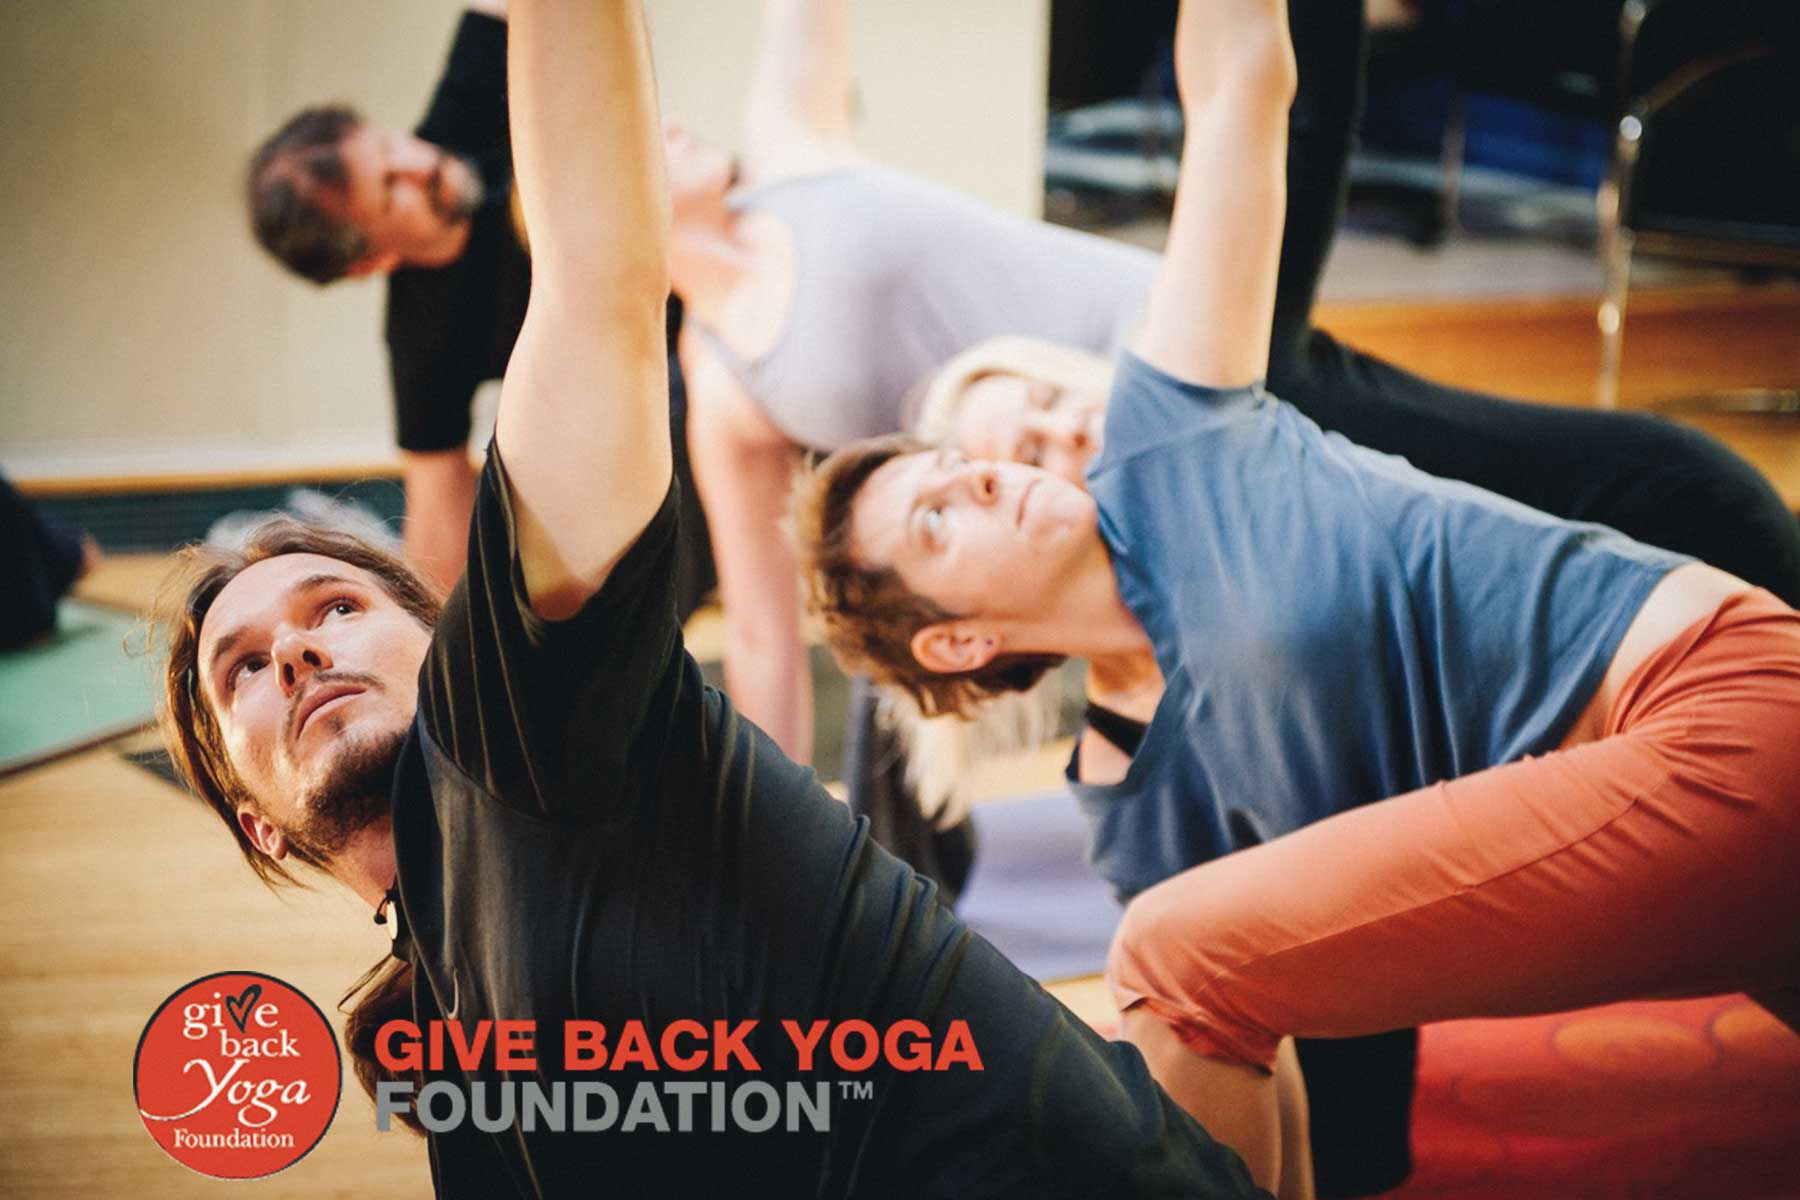 Students of the Give Back Yoga Foundation